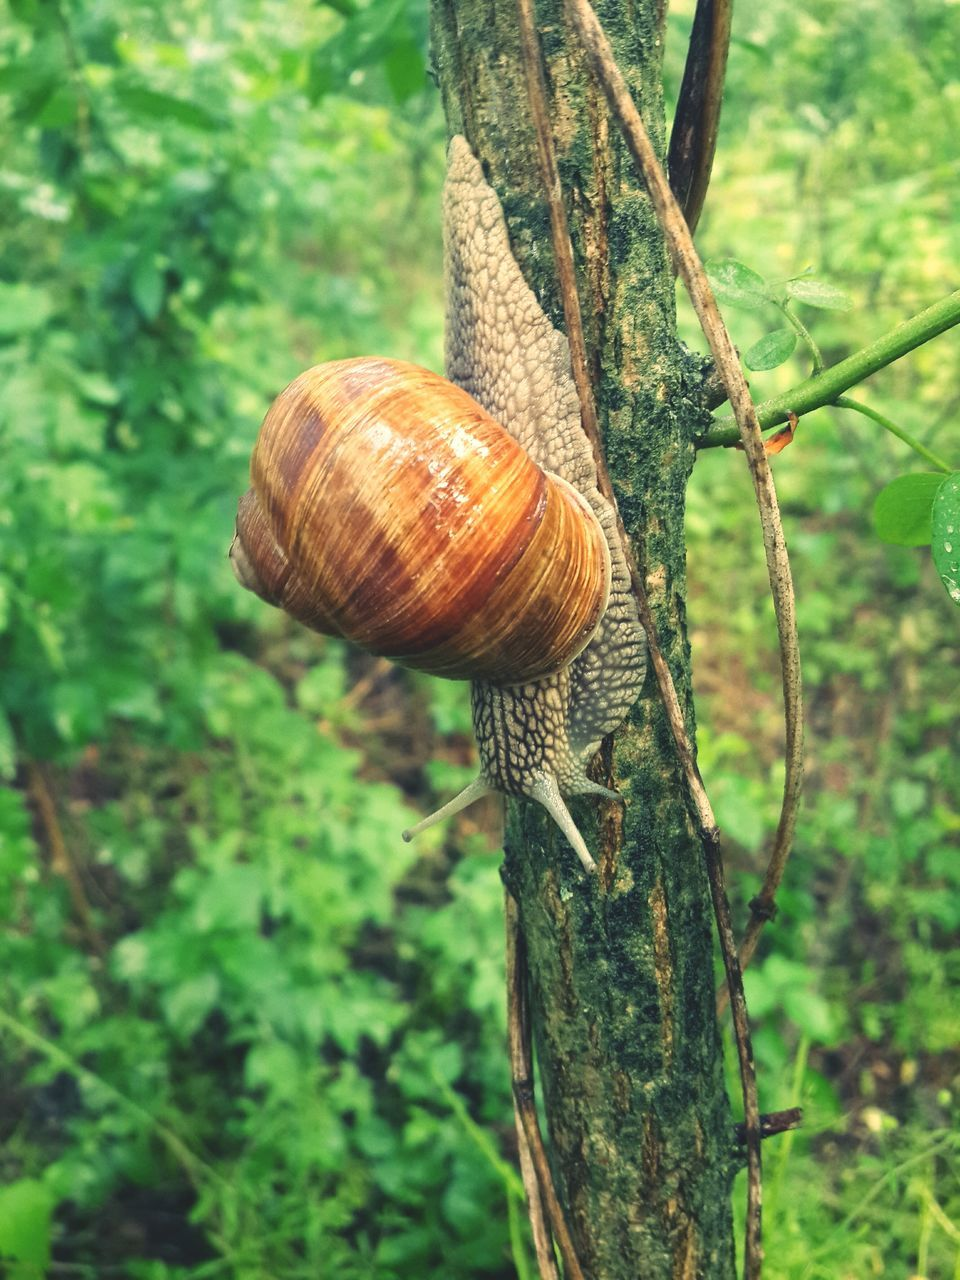 snail, animal shell, gastropod, one animal, animal themes, nature, no people, wildlife, close-up, day, outdoors, focus on foreground, animals in the wild, fragility, beauty in nature, tree